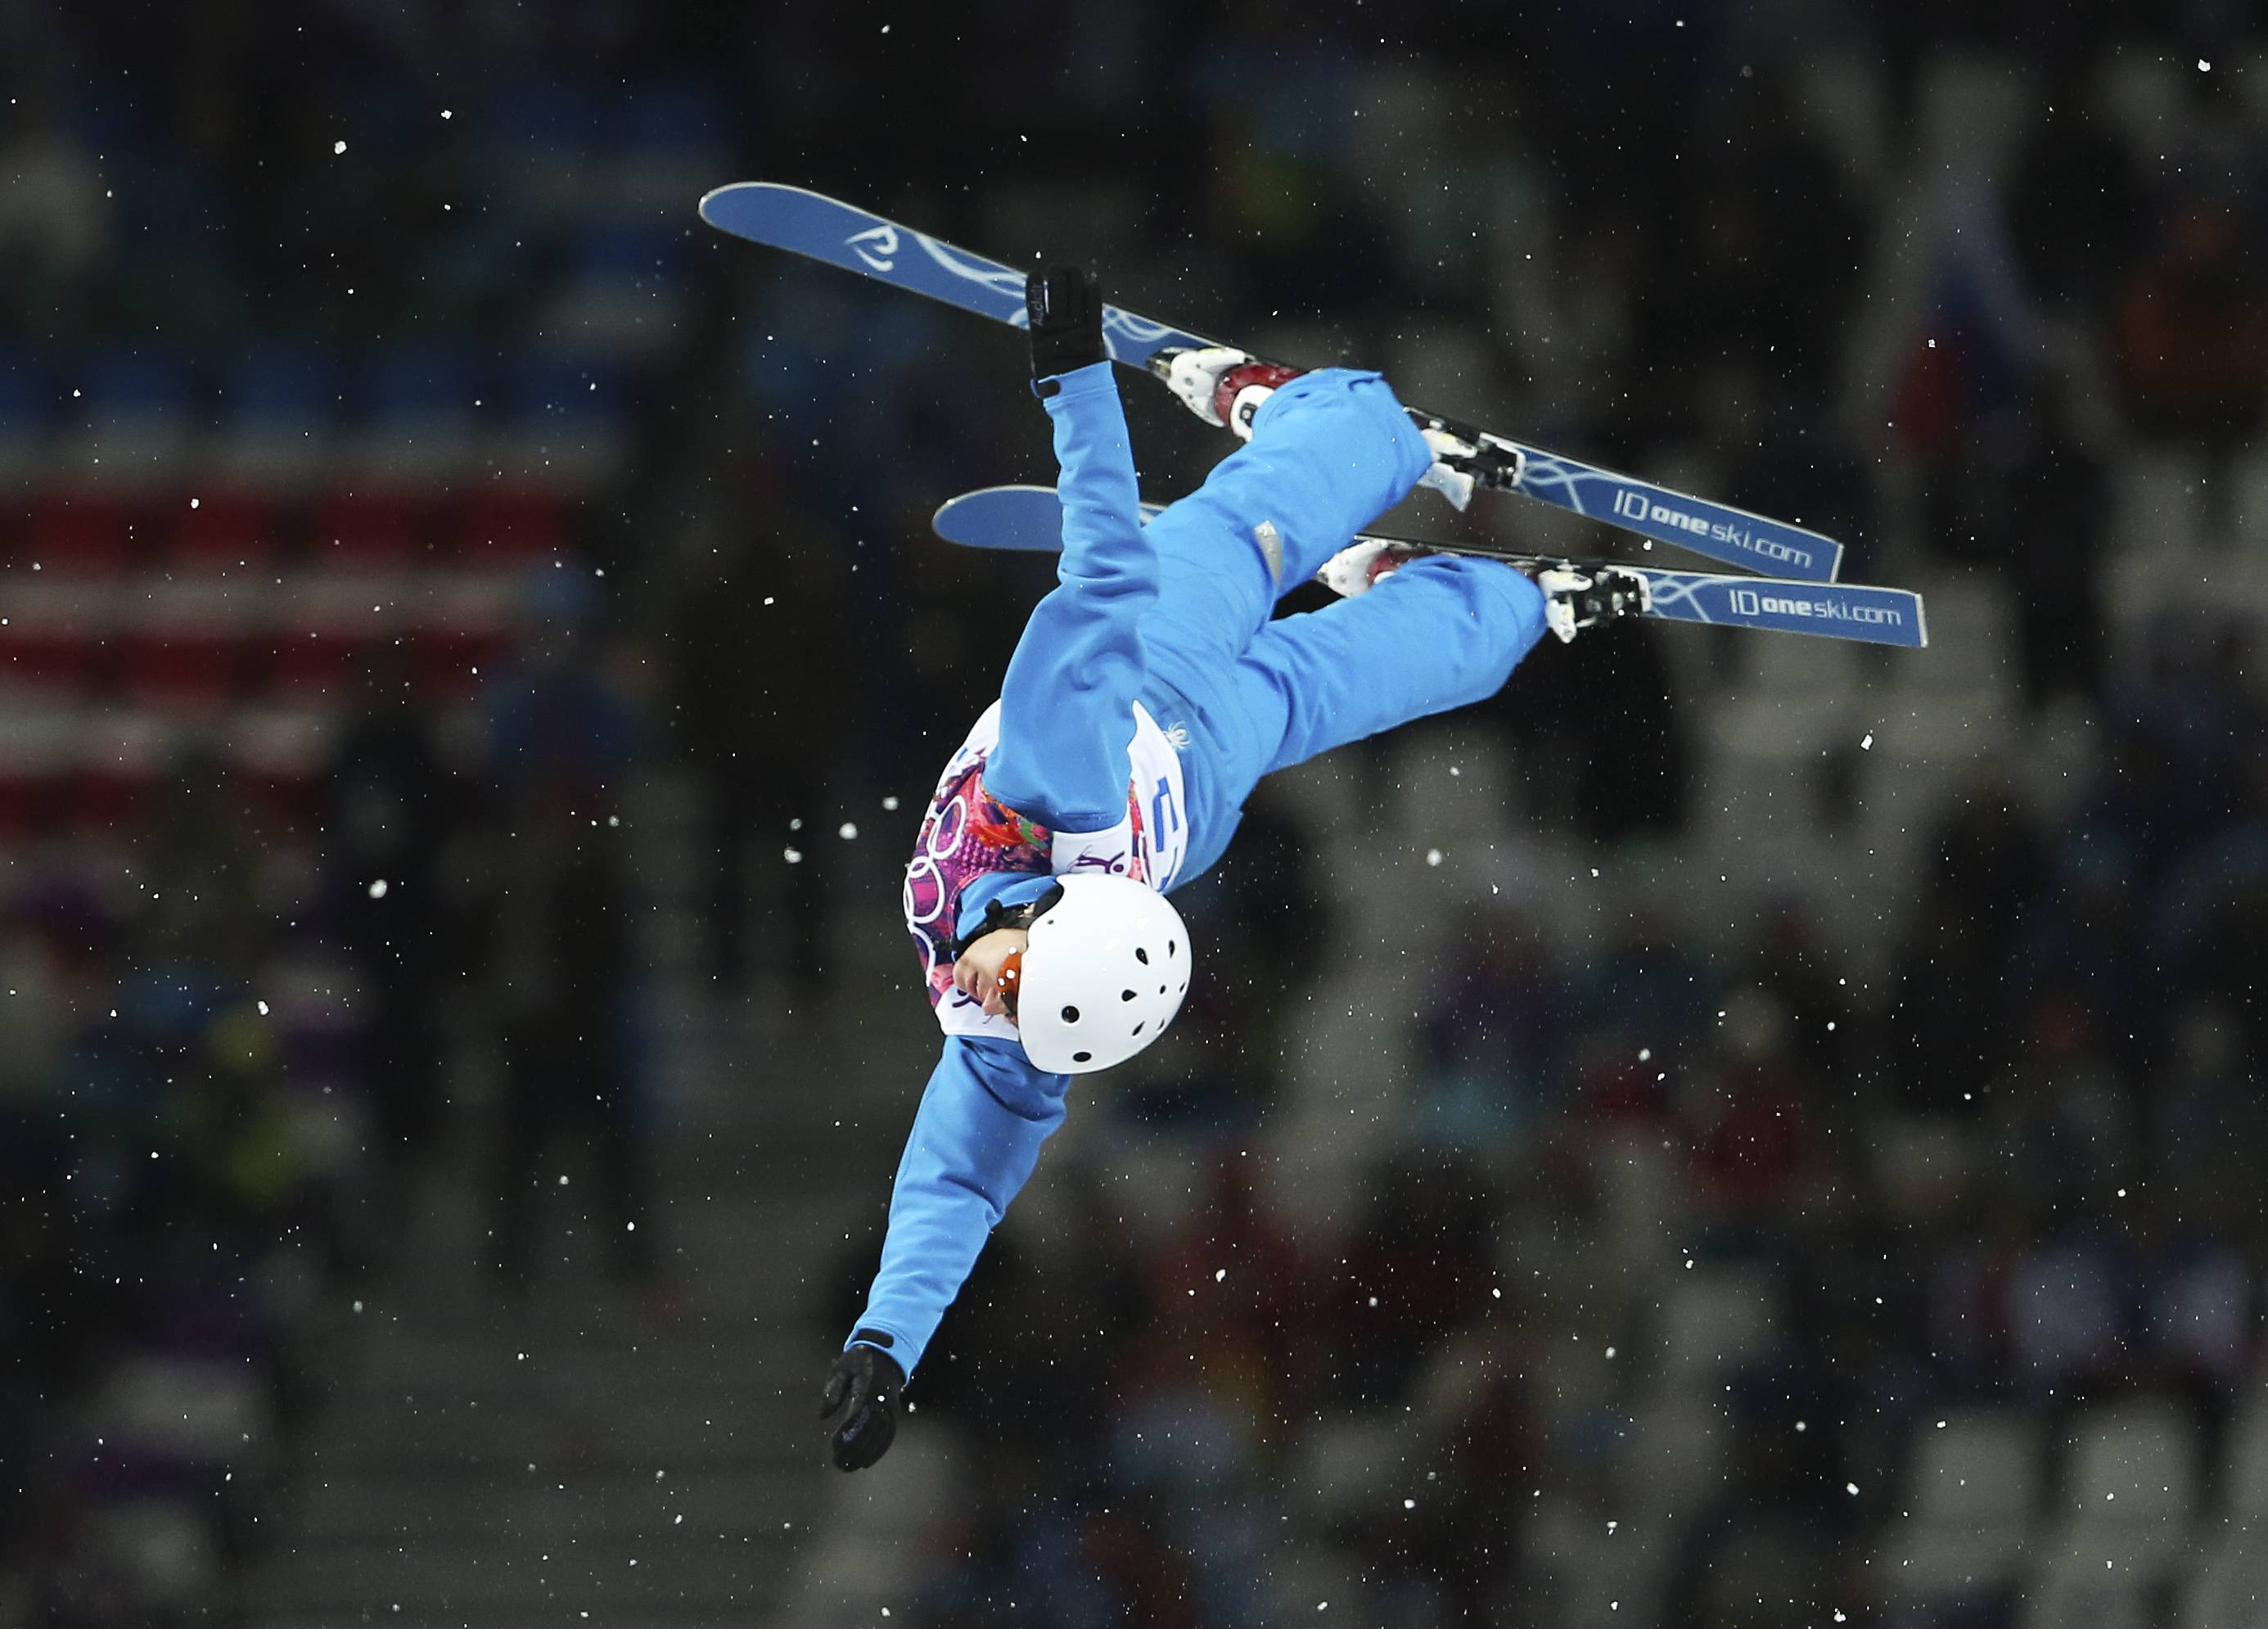 Alla Tsuper of Belarus makes her last jump in the women's freestyle skiing aerials final.